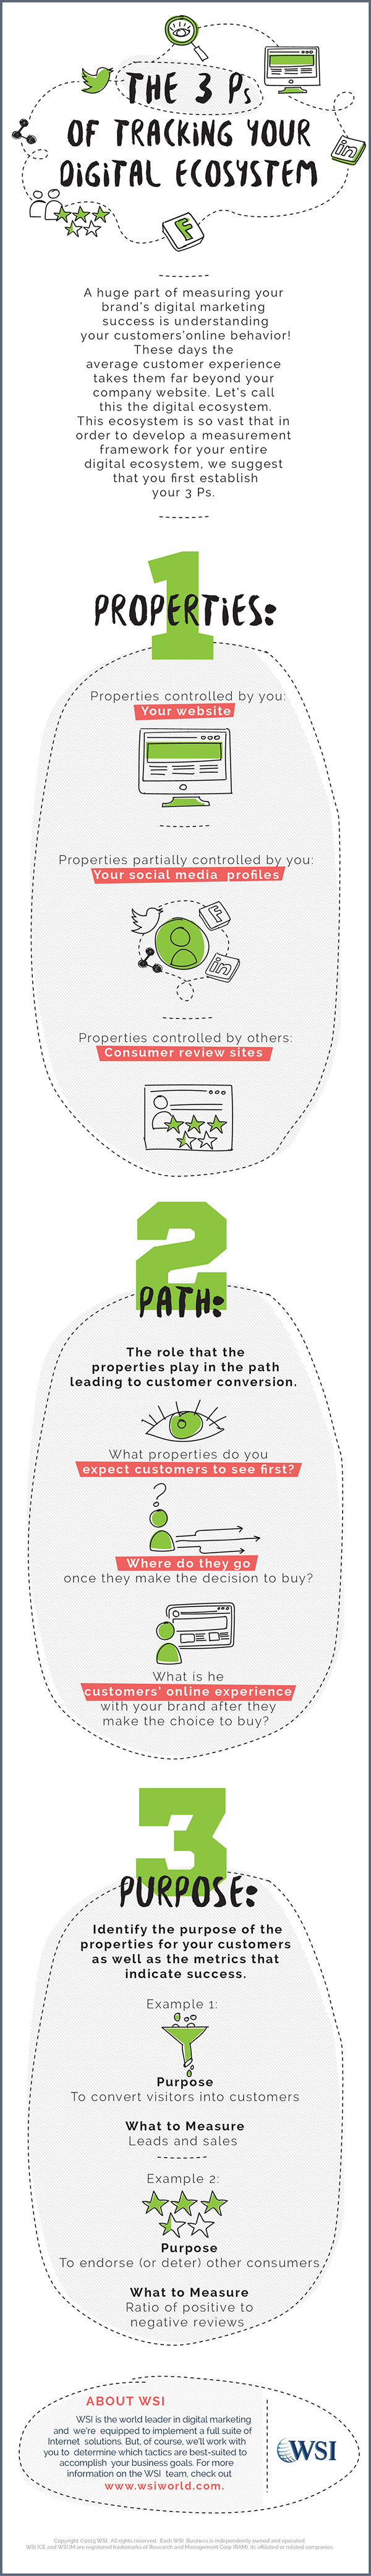 Infographic 3Ps of Tracking your Digital Ecosystem